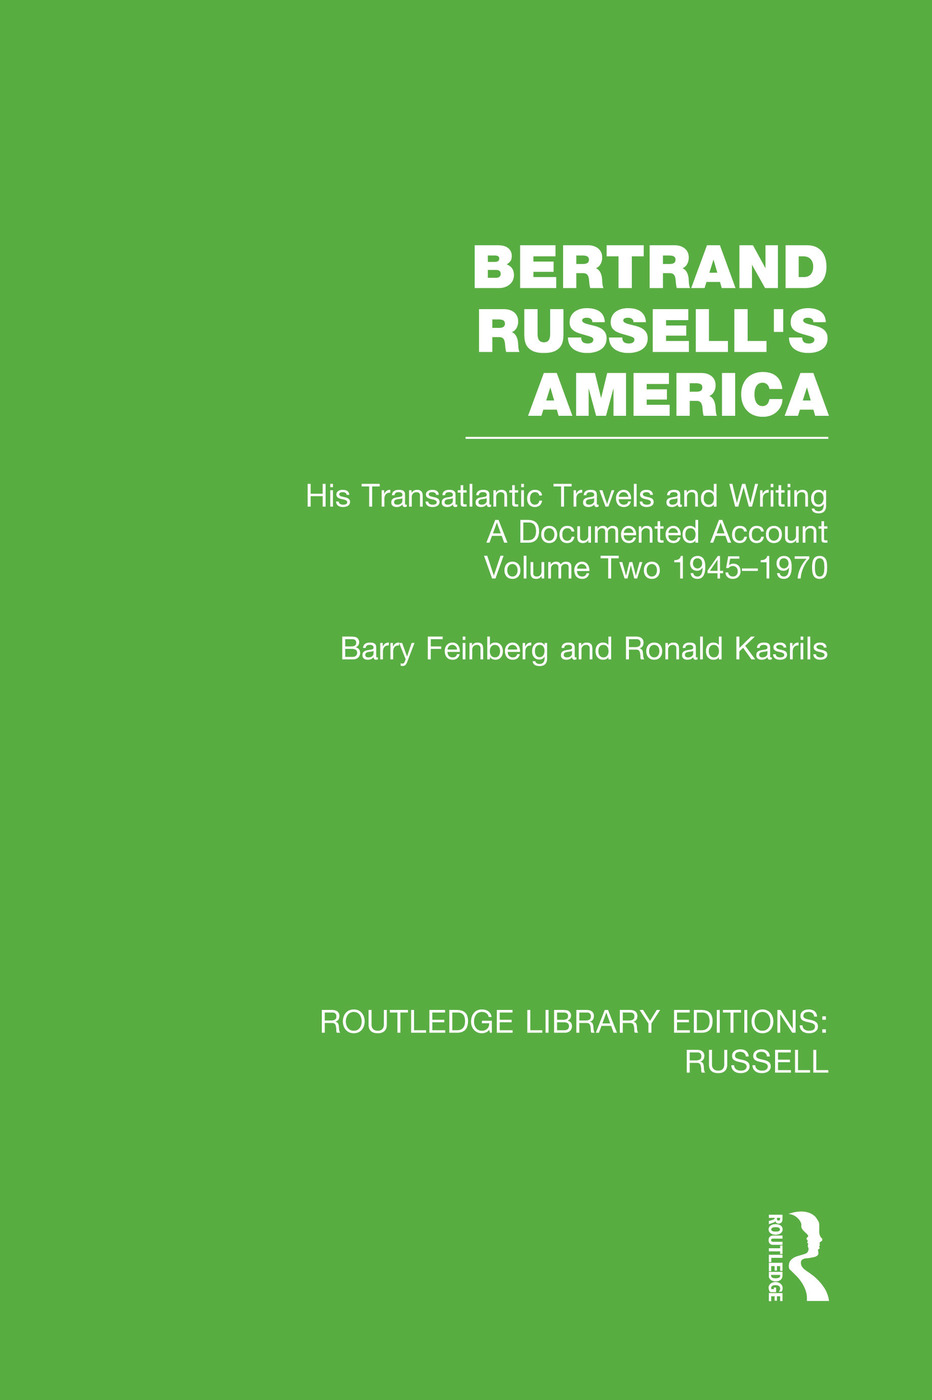 Bertrand Russell's America: His Transatlantic Travels and Writings. Volume Two 1945-1970 book cover